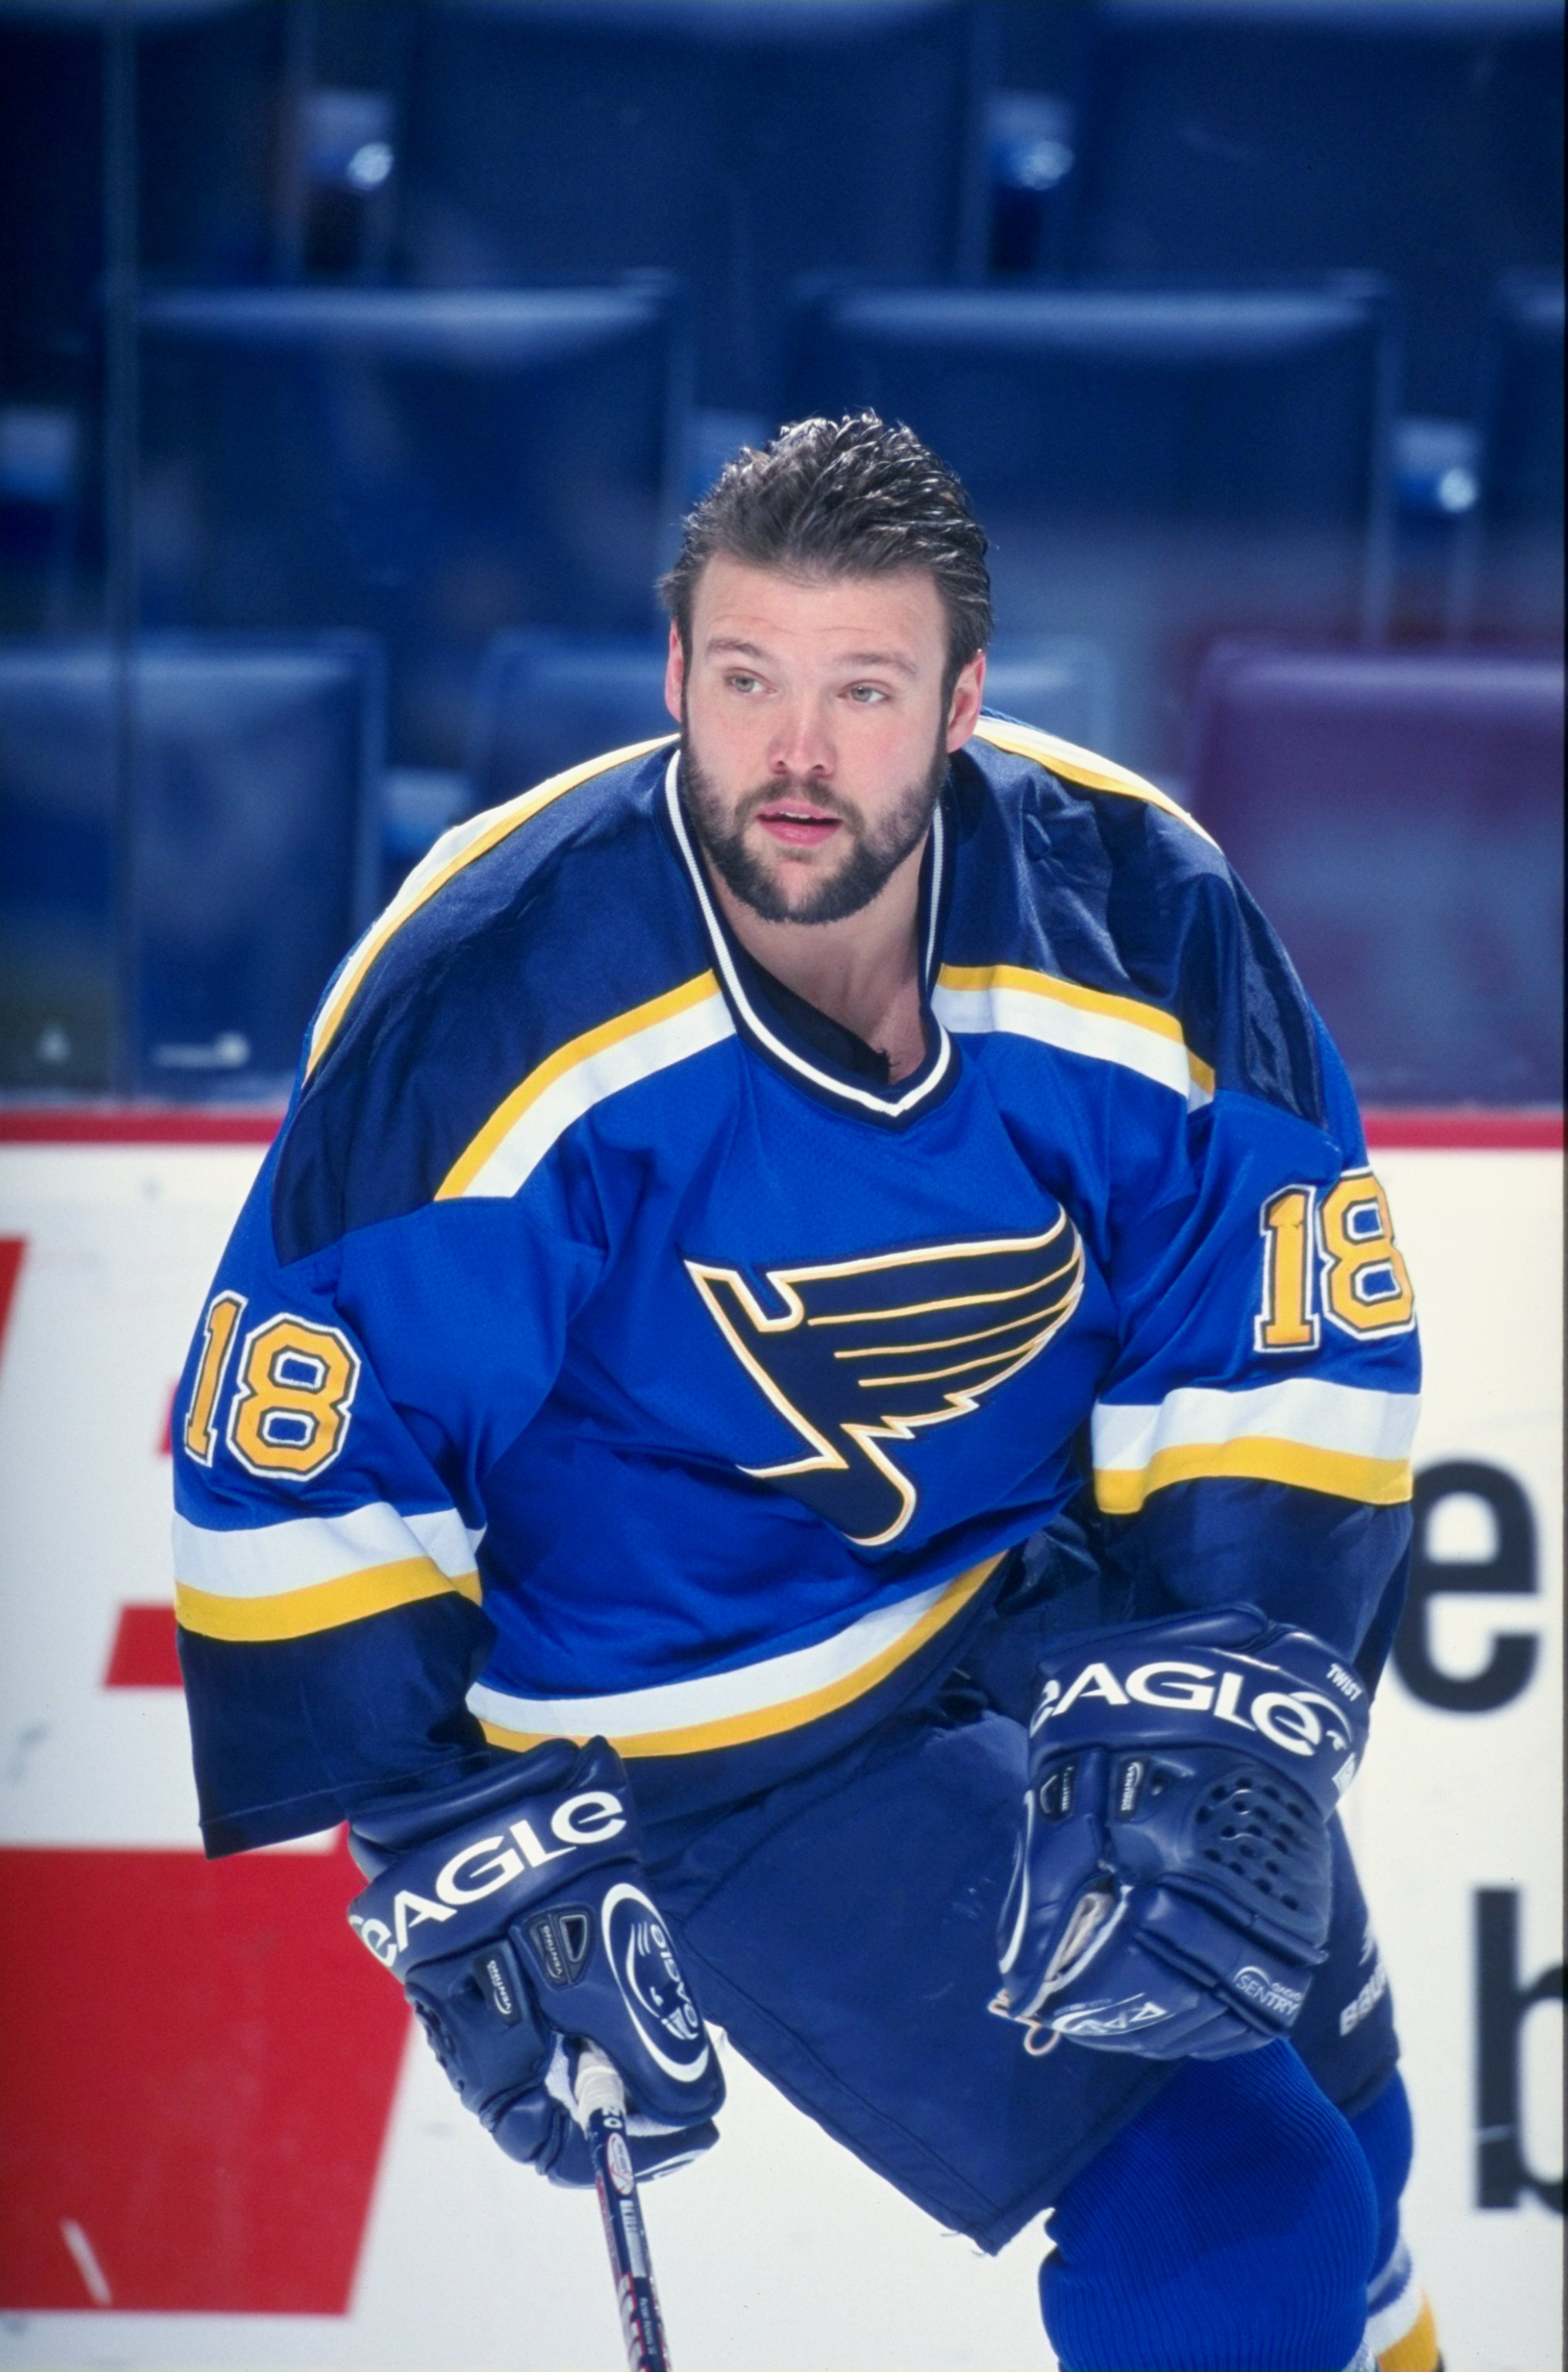 13 Jan 1999 Tony Twist 18 Of The St Louis Blues In Action